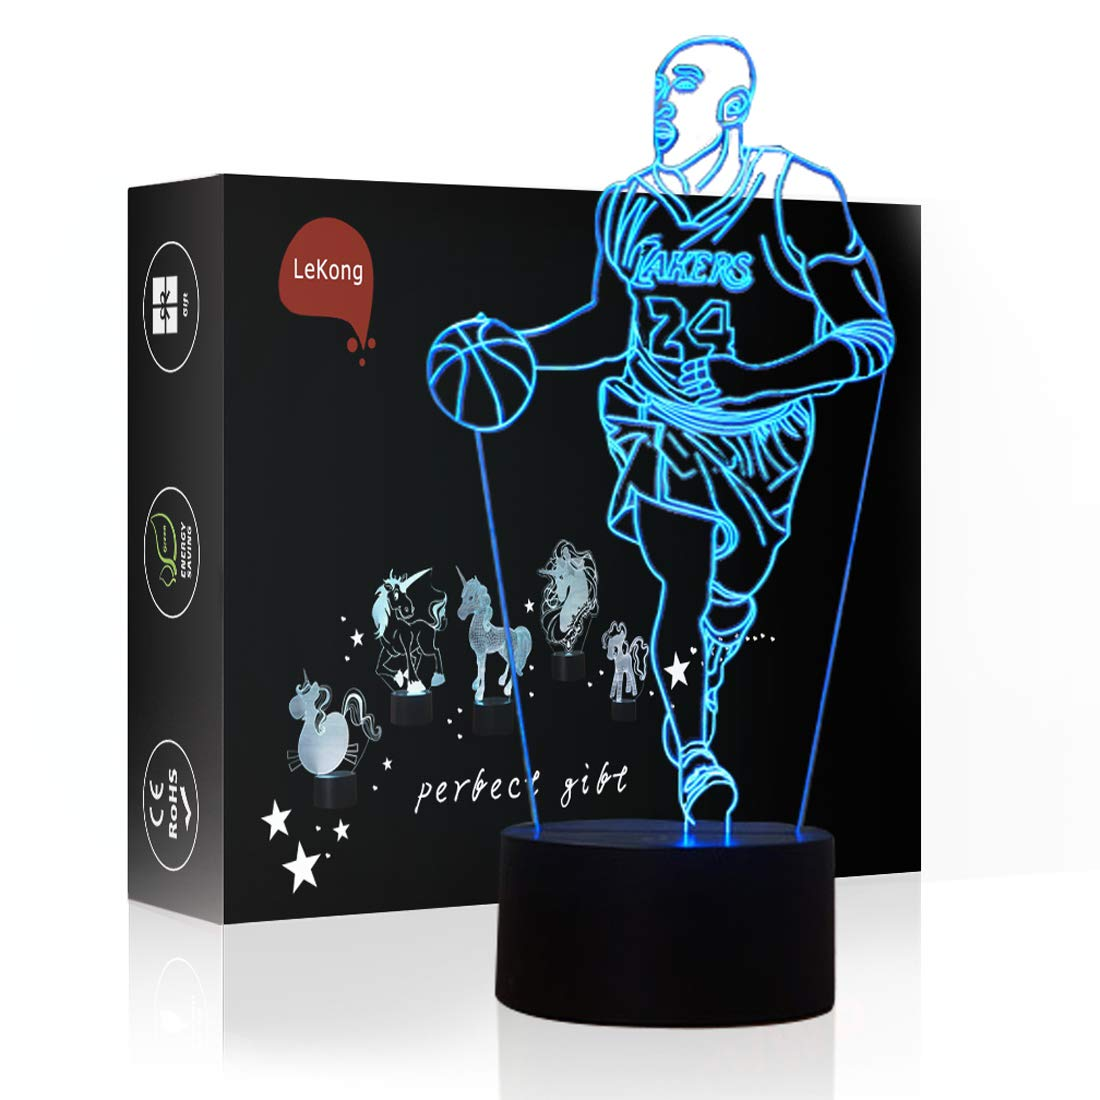 Sports Basketball LED Night Light for Kids 3D Illusion, LeKong USB Plug in, Touch Control, Gift for Christmas & Birthday, Fit for Halloween Decorations